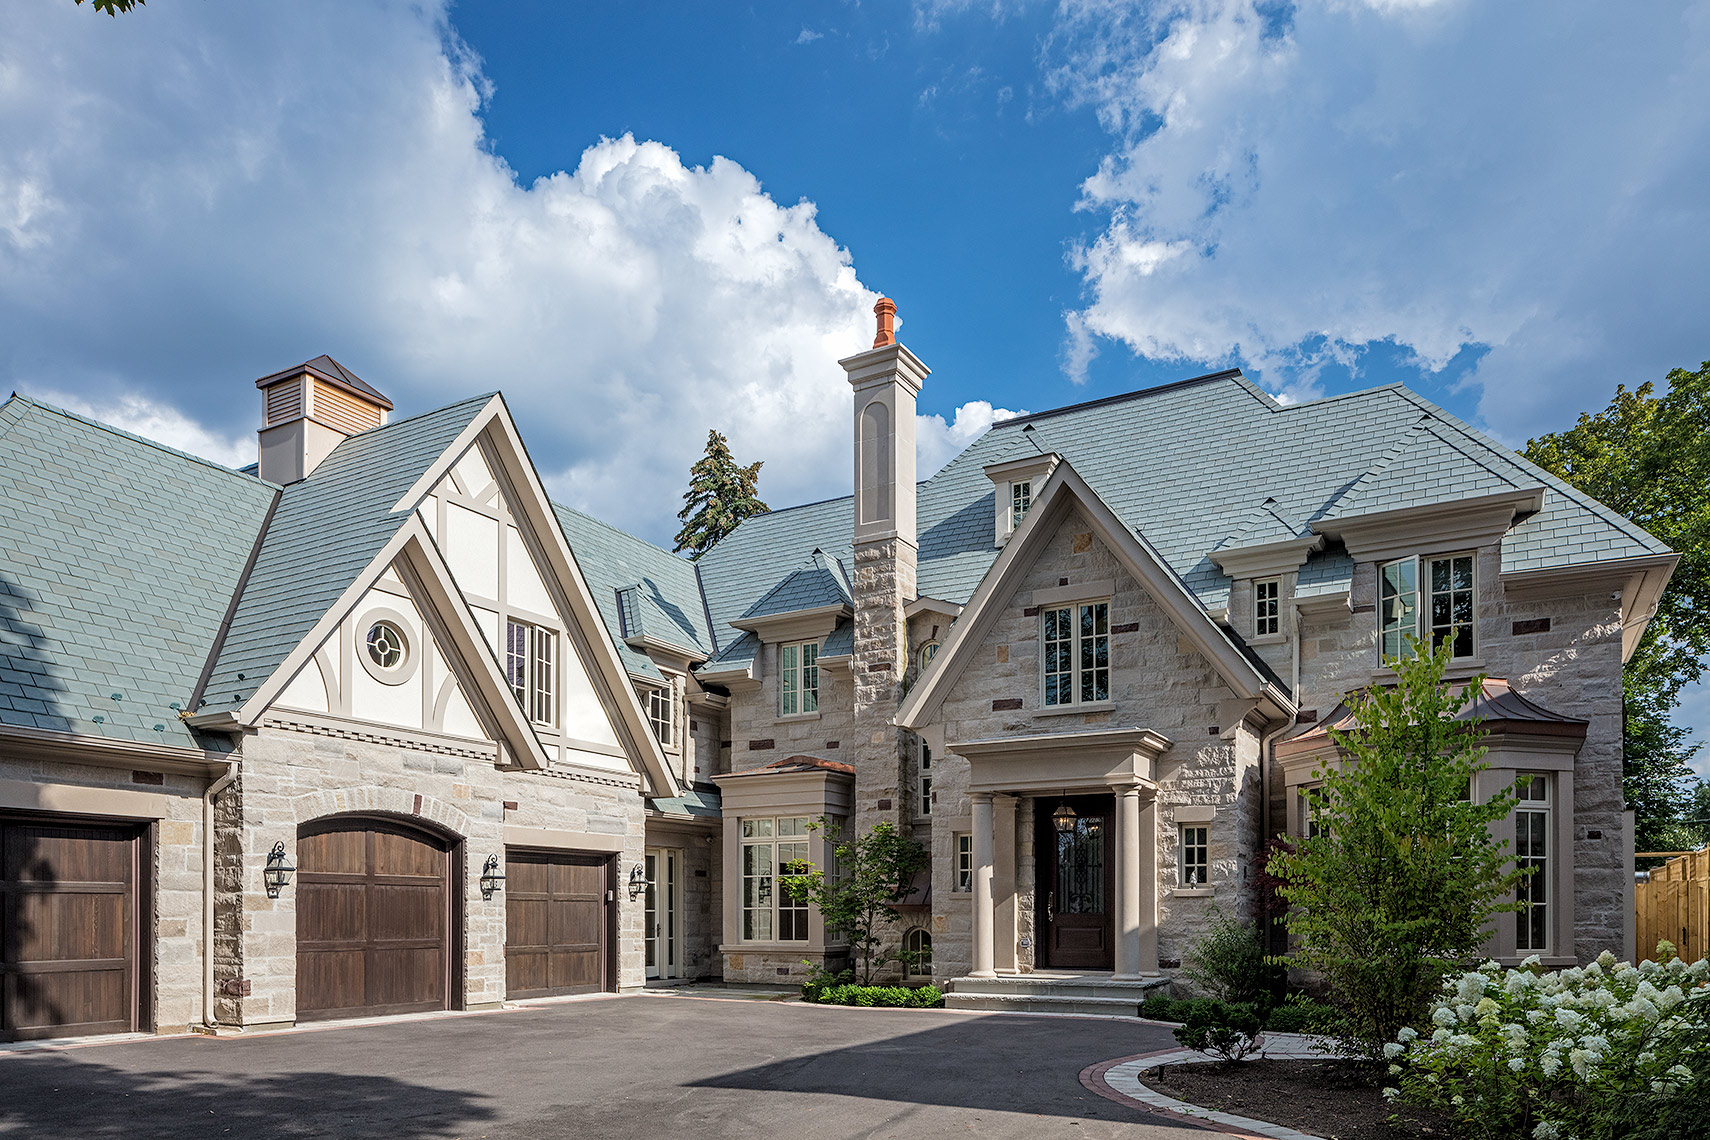 0-Customhomes-MakowArchitects-tudor-luxurycustomhome-01